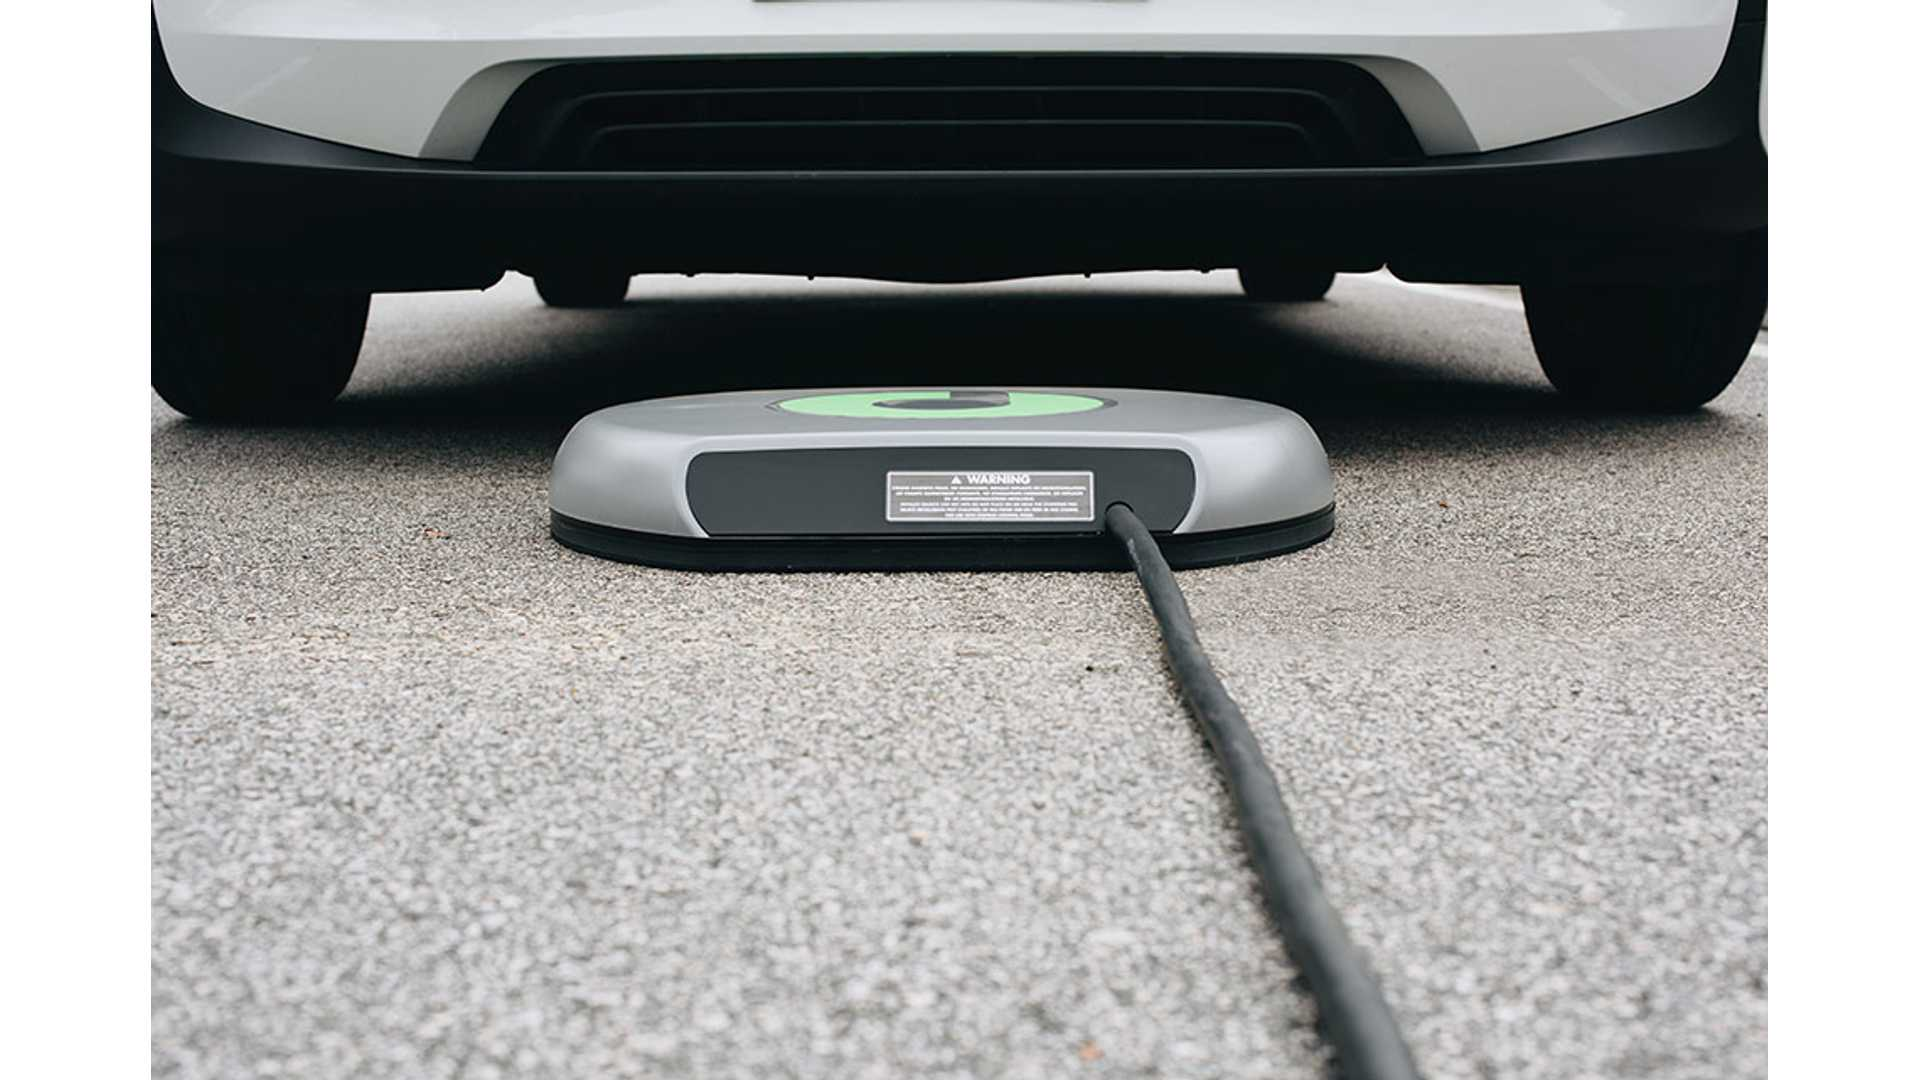 SAE Agrees On J2954 Wireless Charging Standard, Test Stations Will